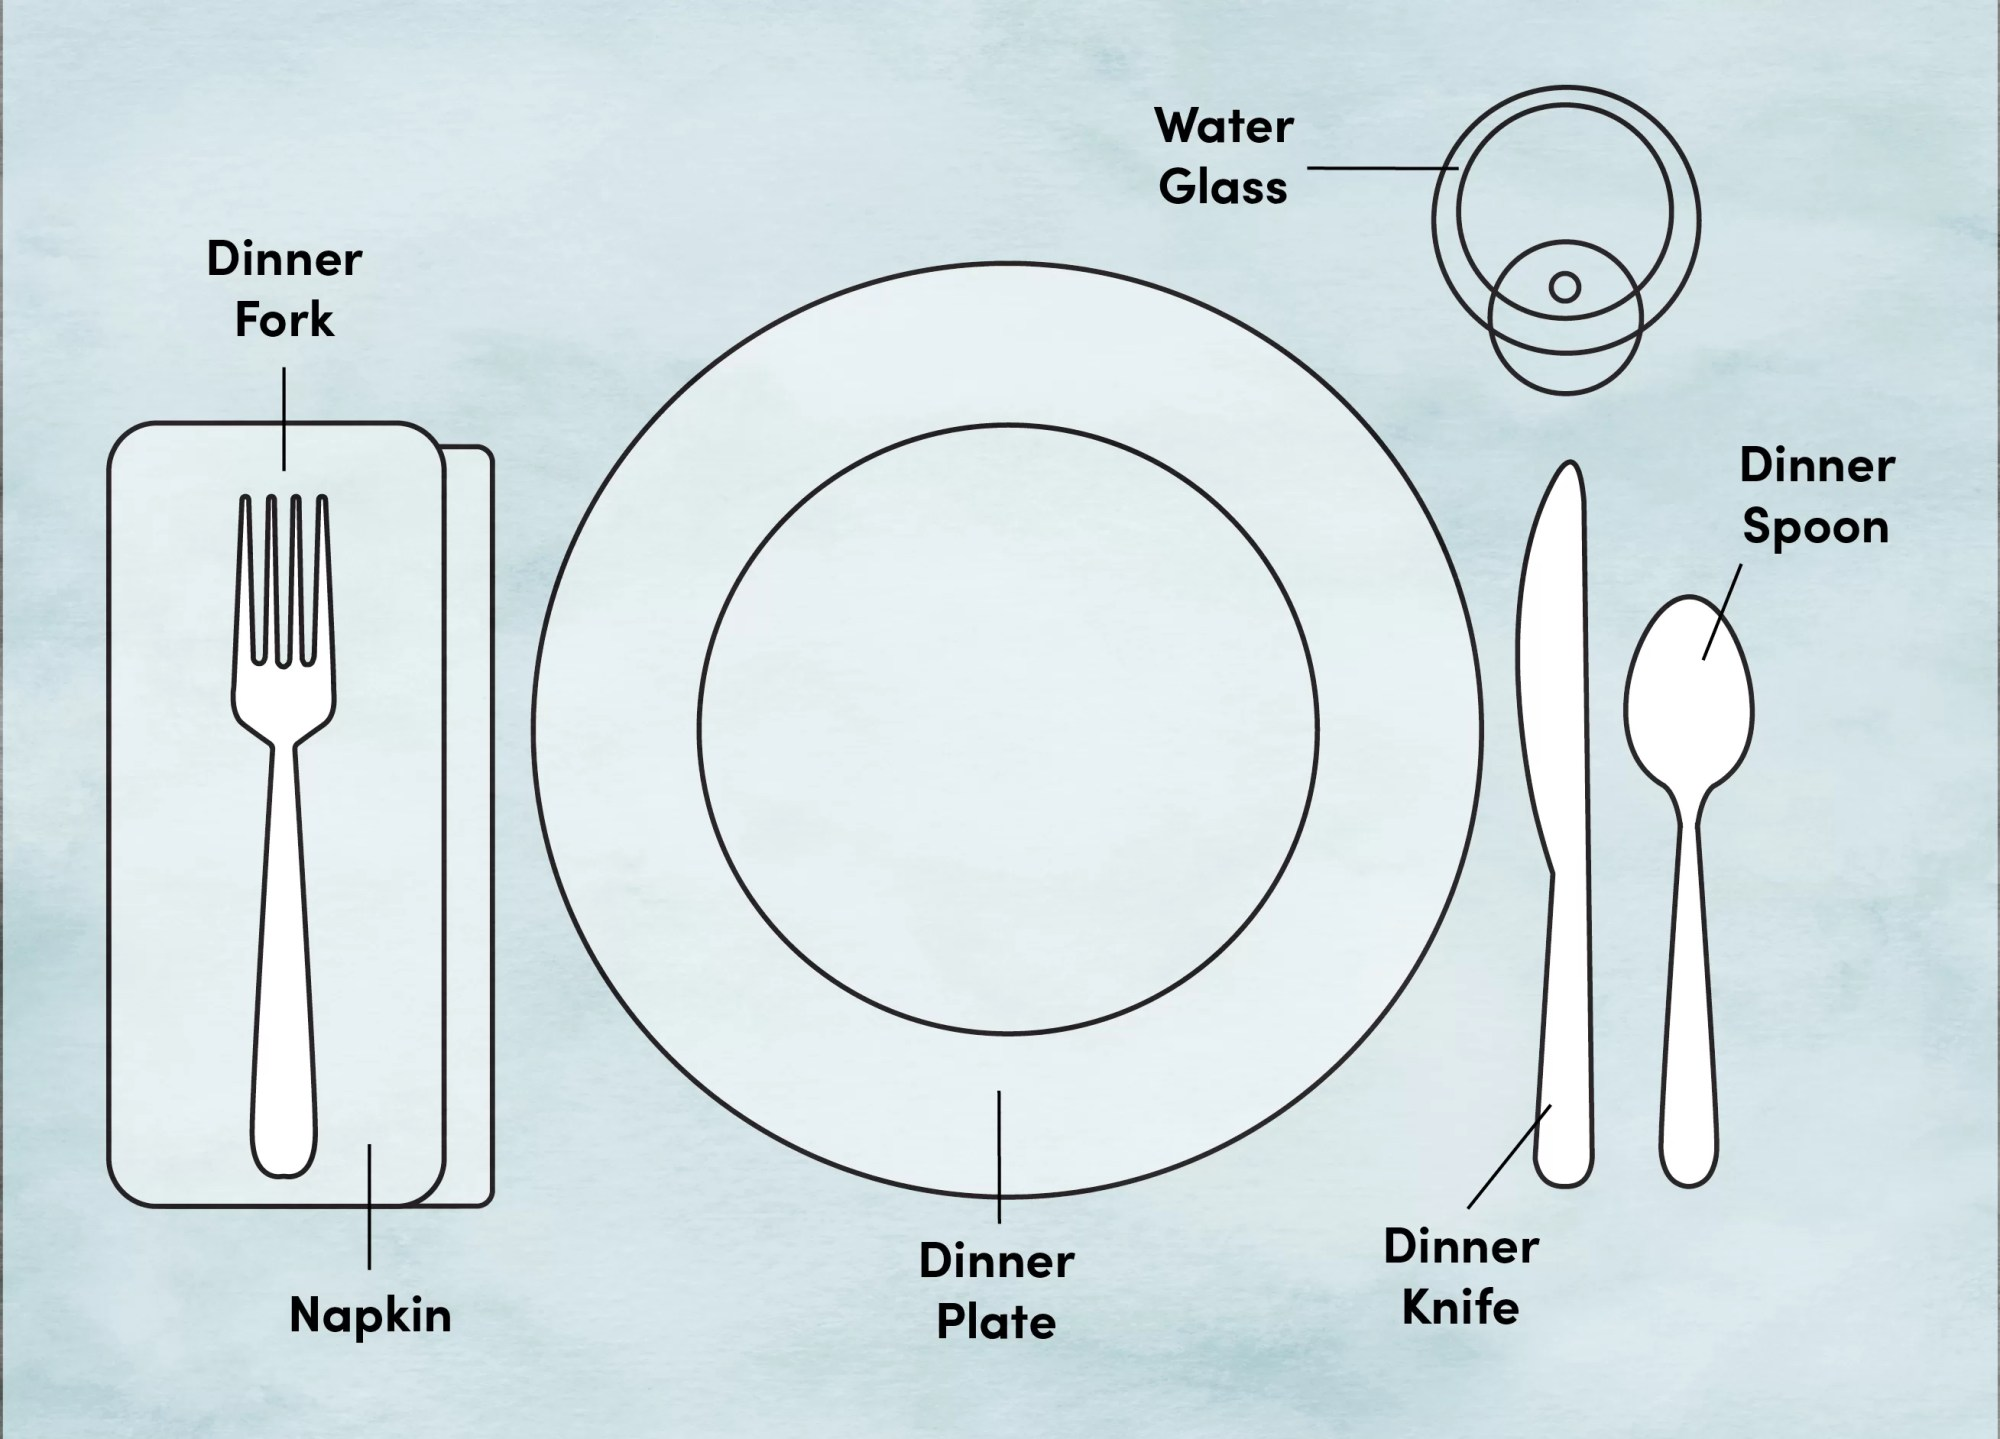 hight resolution of etiquette training proper place and table setting diagram wayfair basic place setting